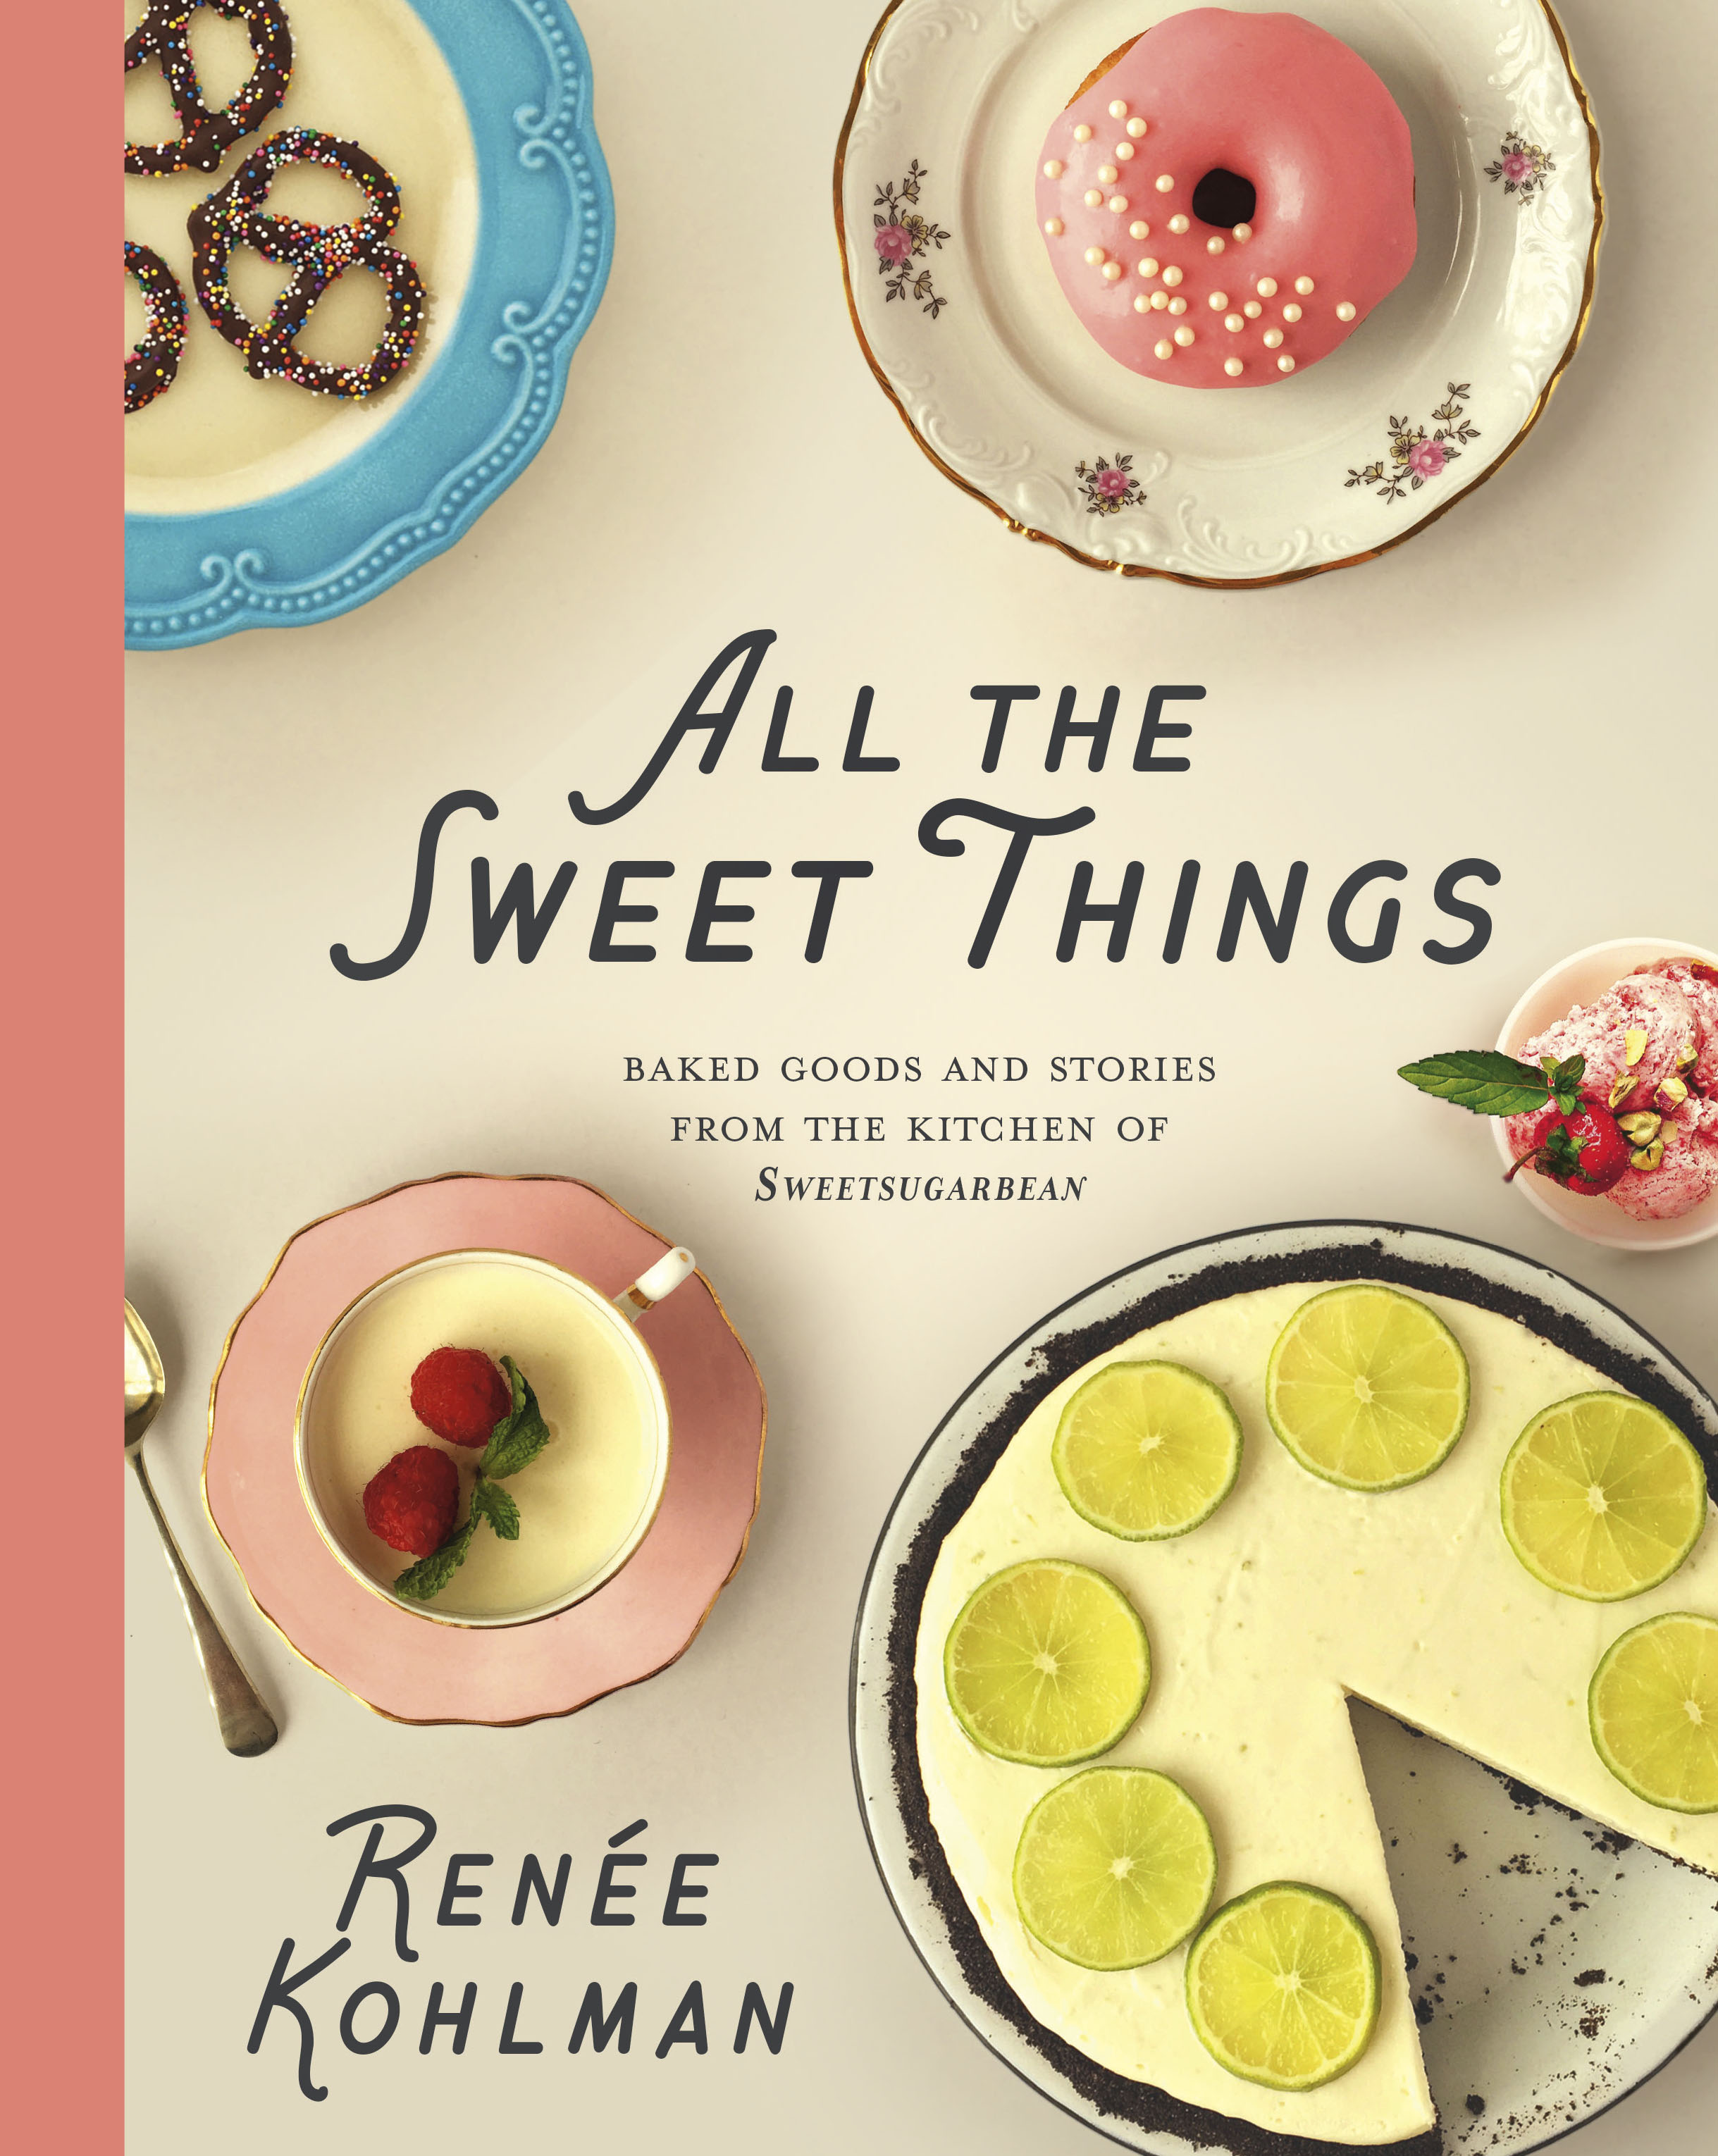 All the Sweet Things Cookbook Cover